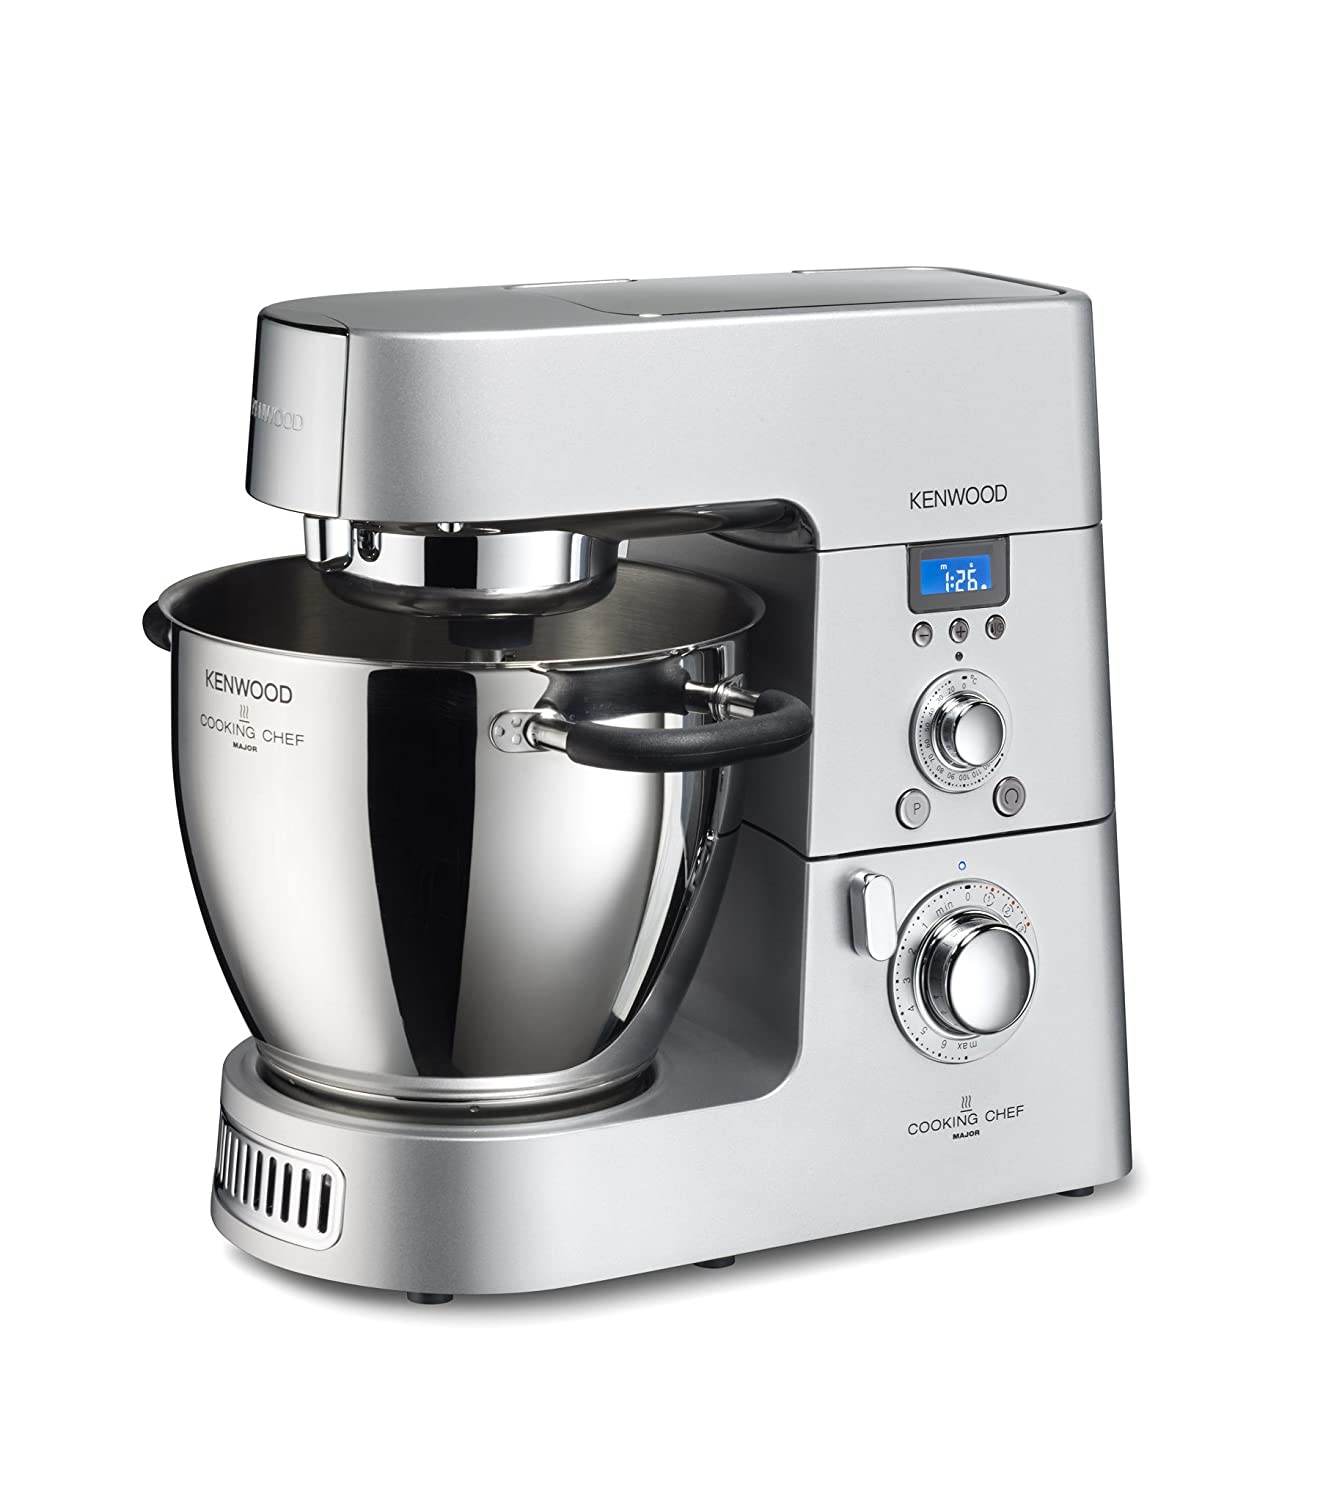 Amazon Kenwood KM080AT Cooking Chef Machine Silver Kitchen